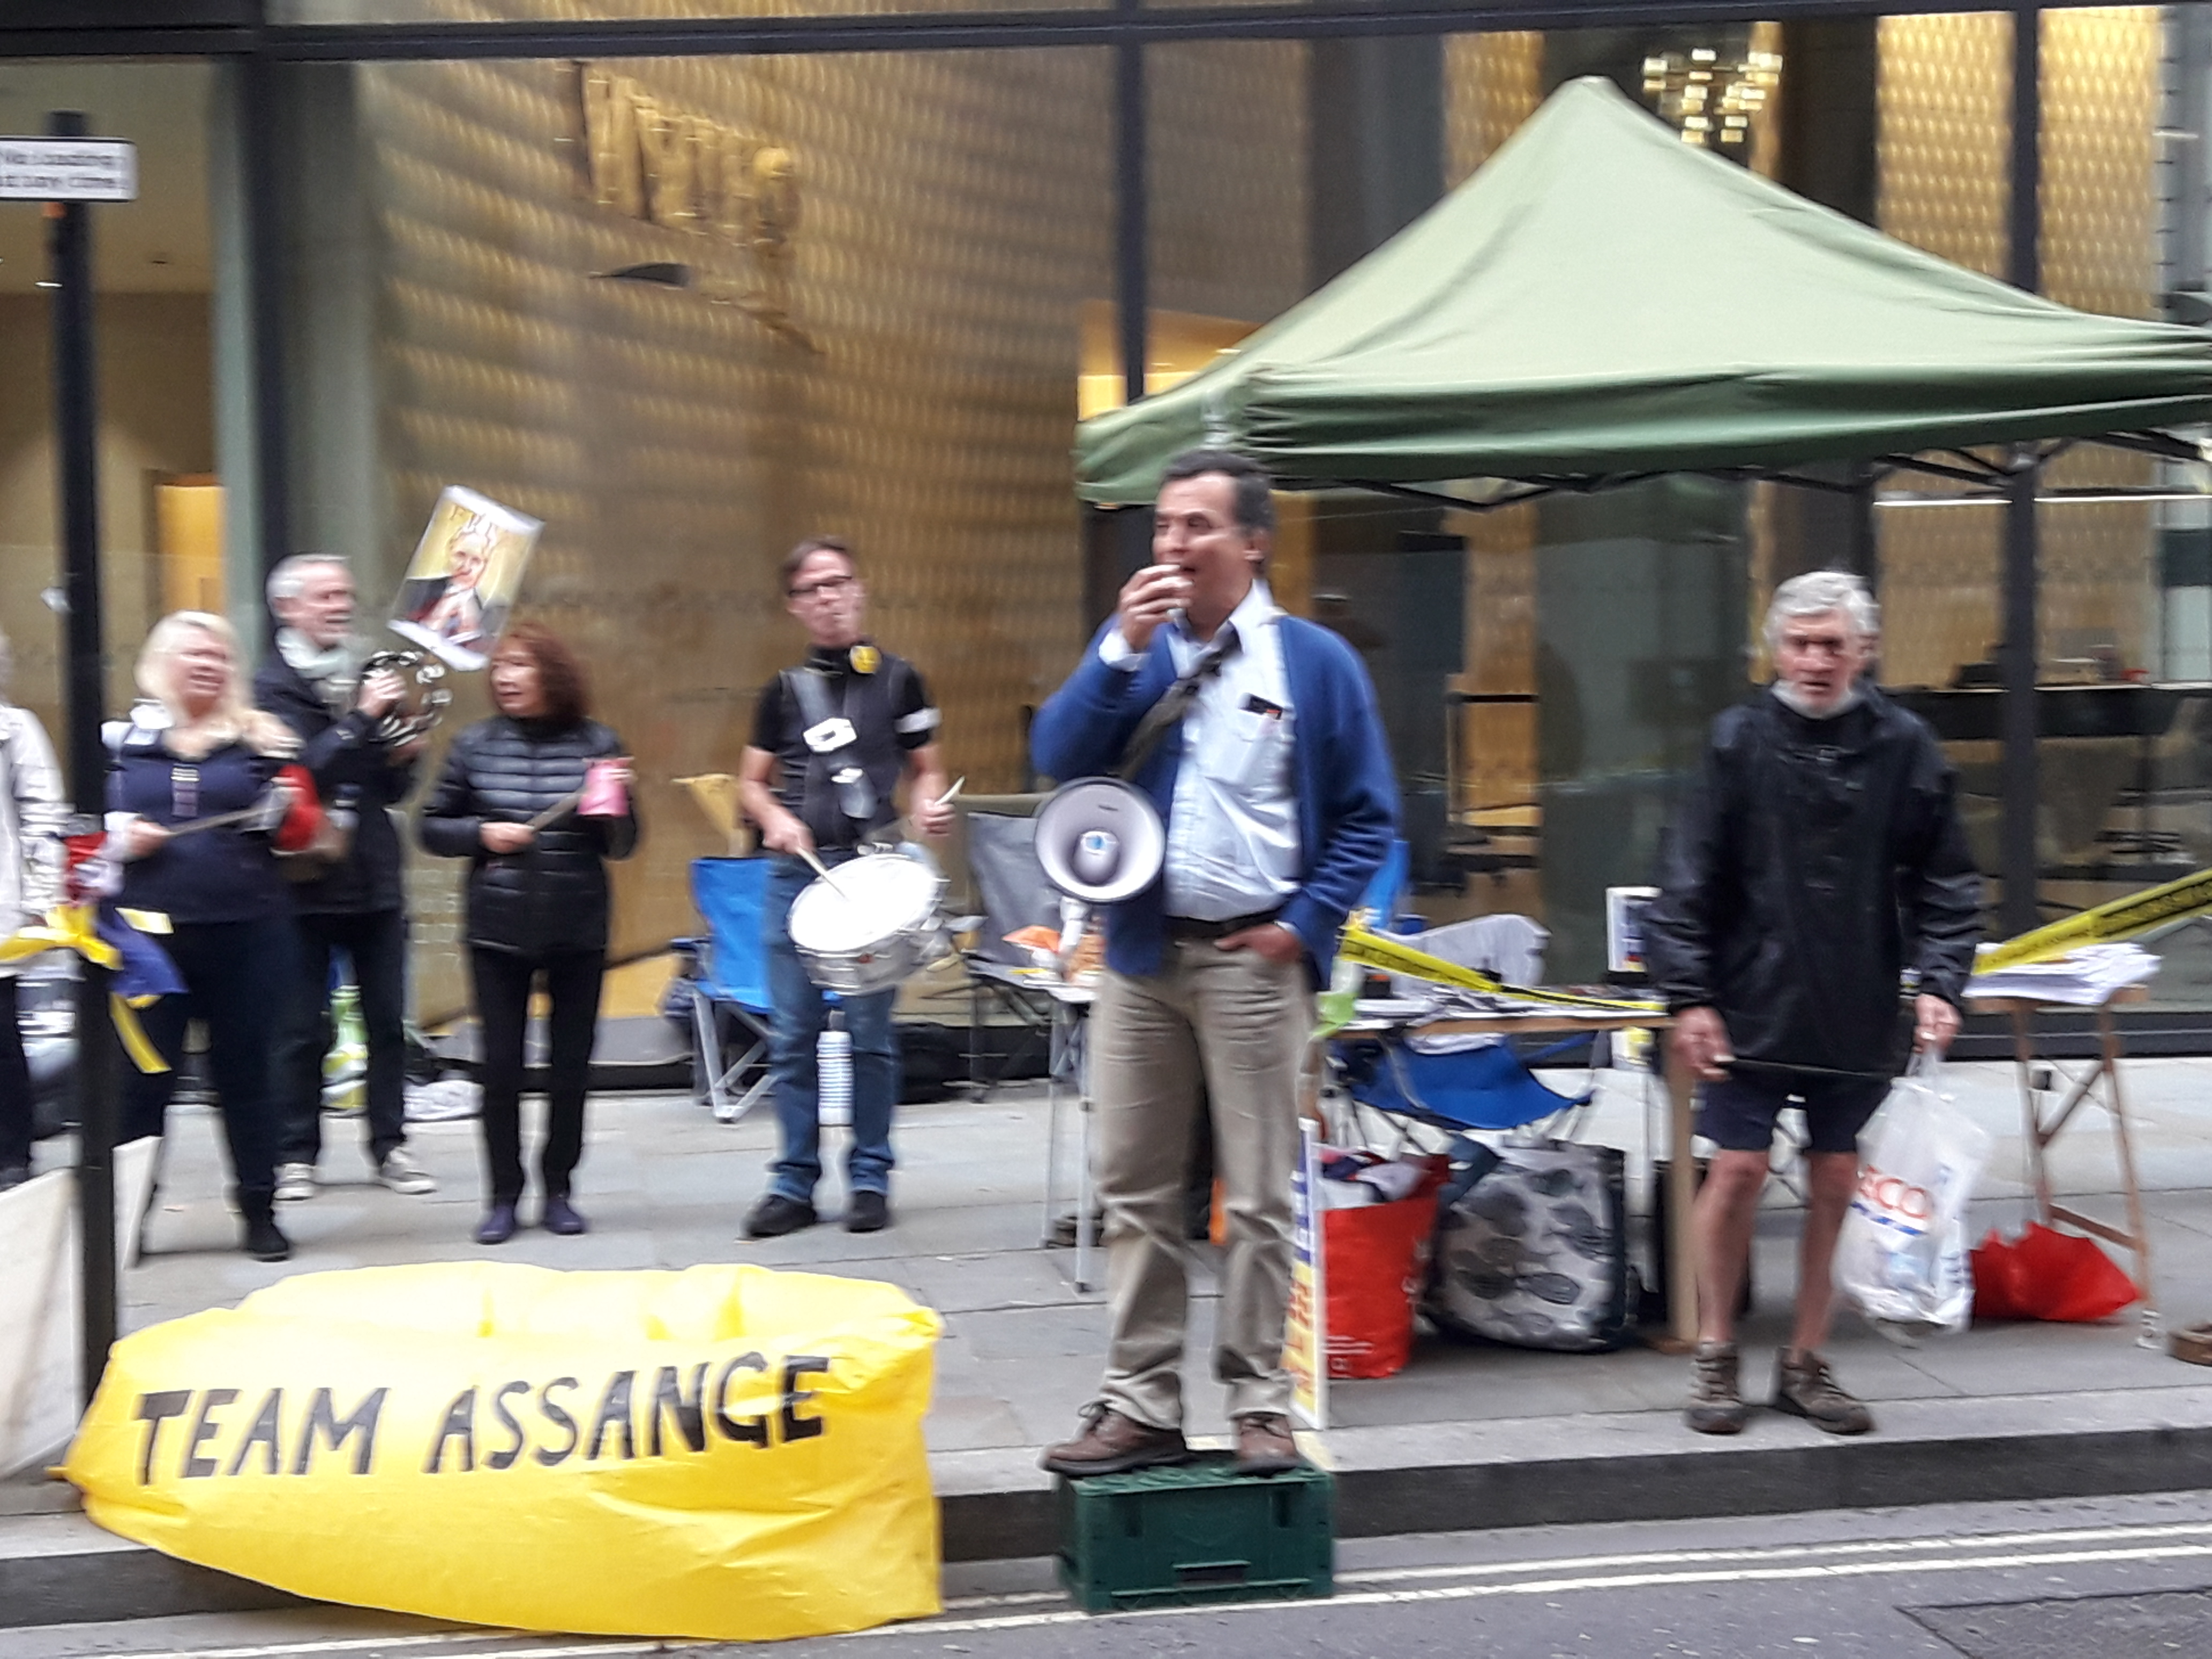 protest_photos:team-assange-old-bailey-sept20.jpg